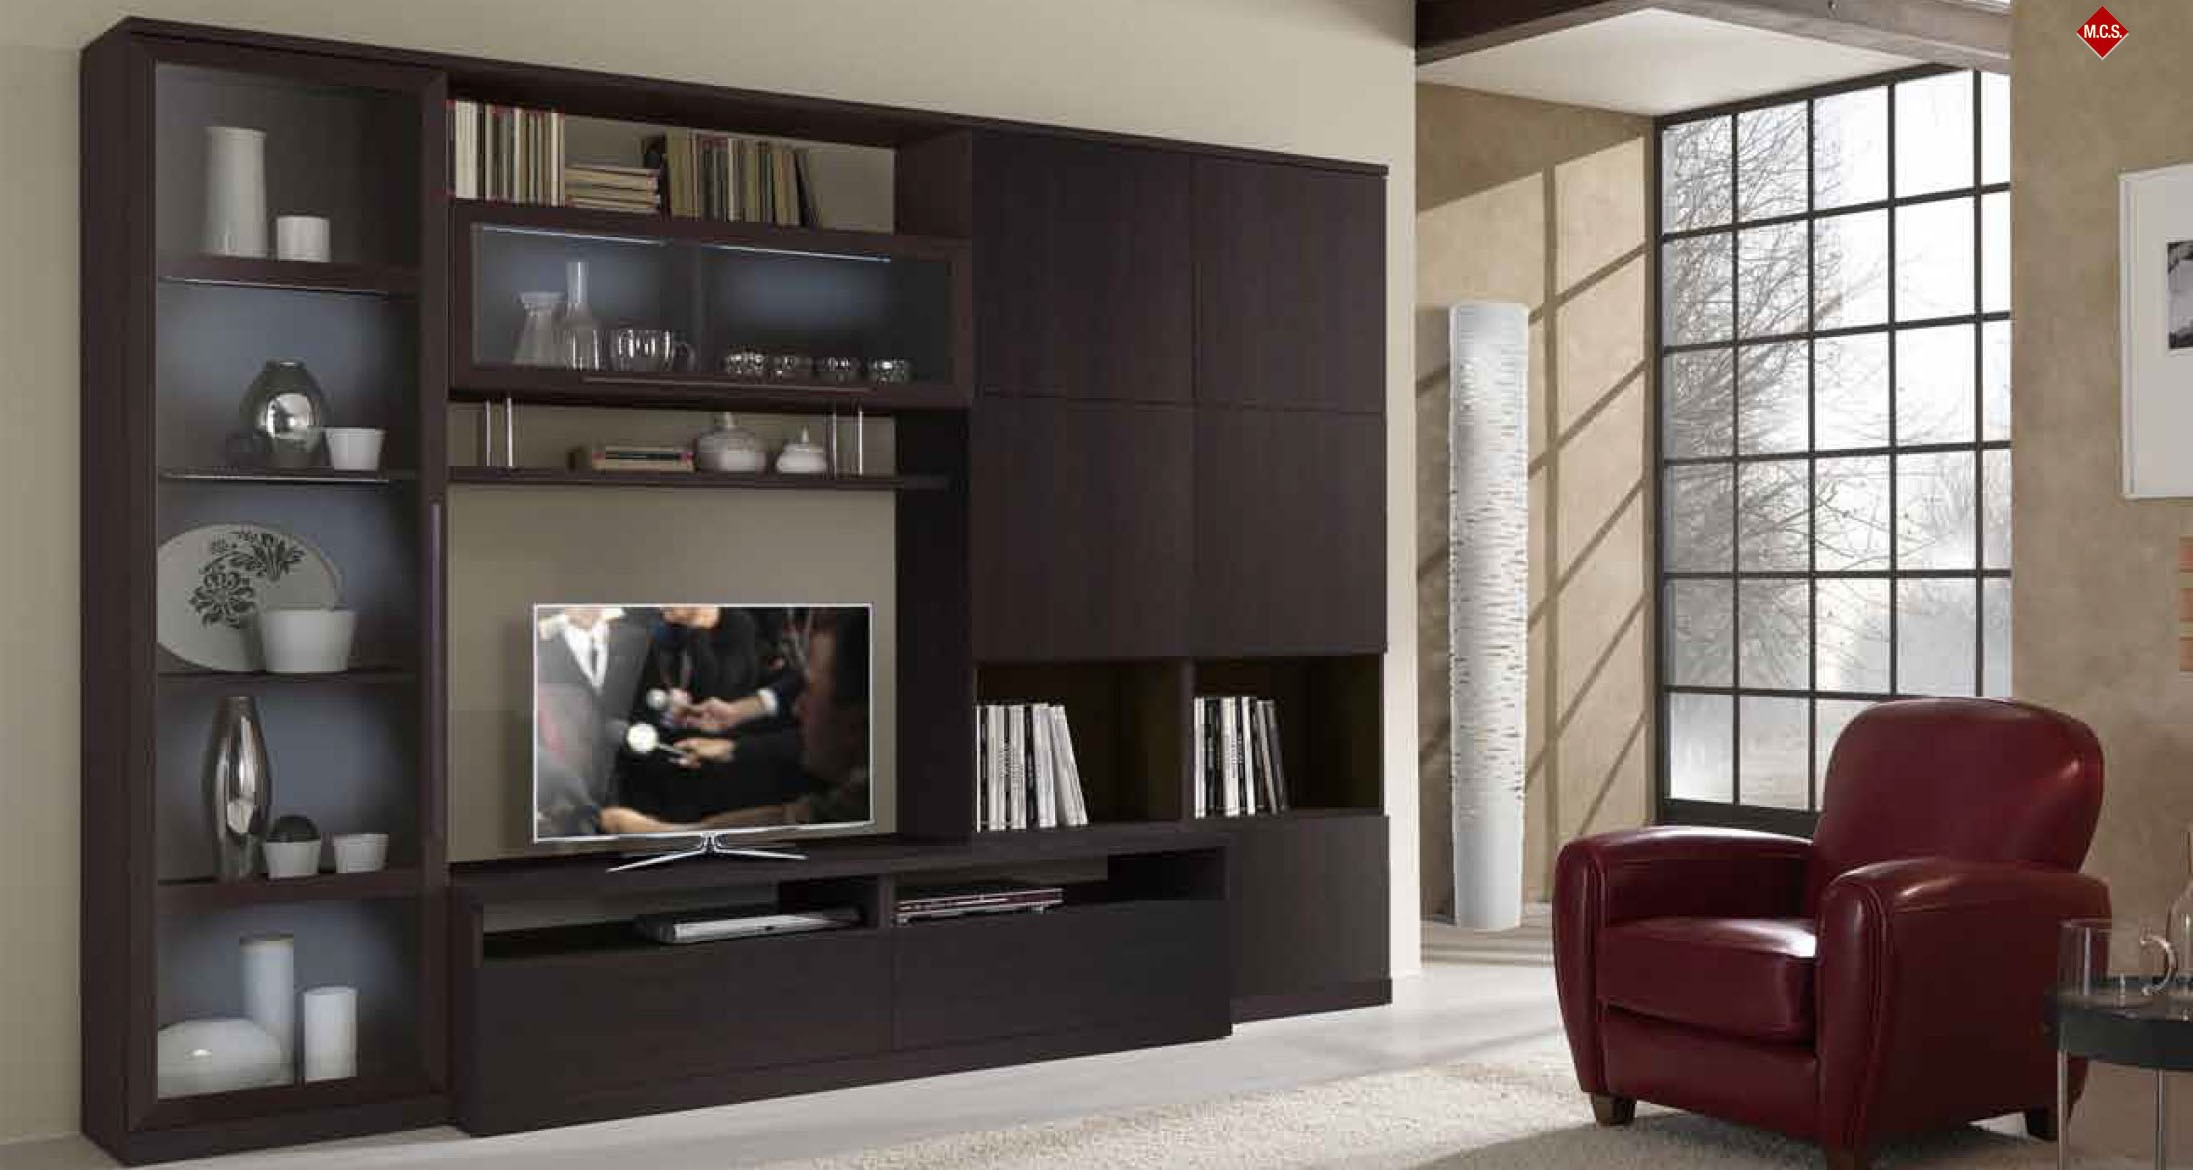 tv unit ideas wall mounted tv unit designs tv unit design for living room tv cabinet designs for living room tv showcase designs for hall tv cupboard designs led unit designs